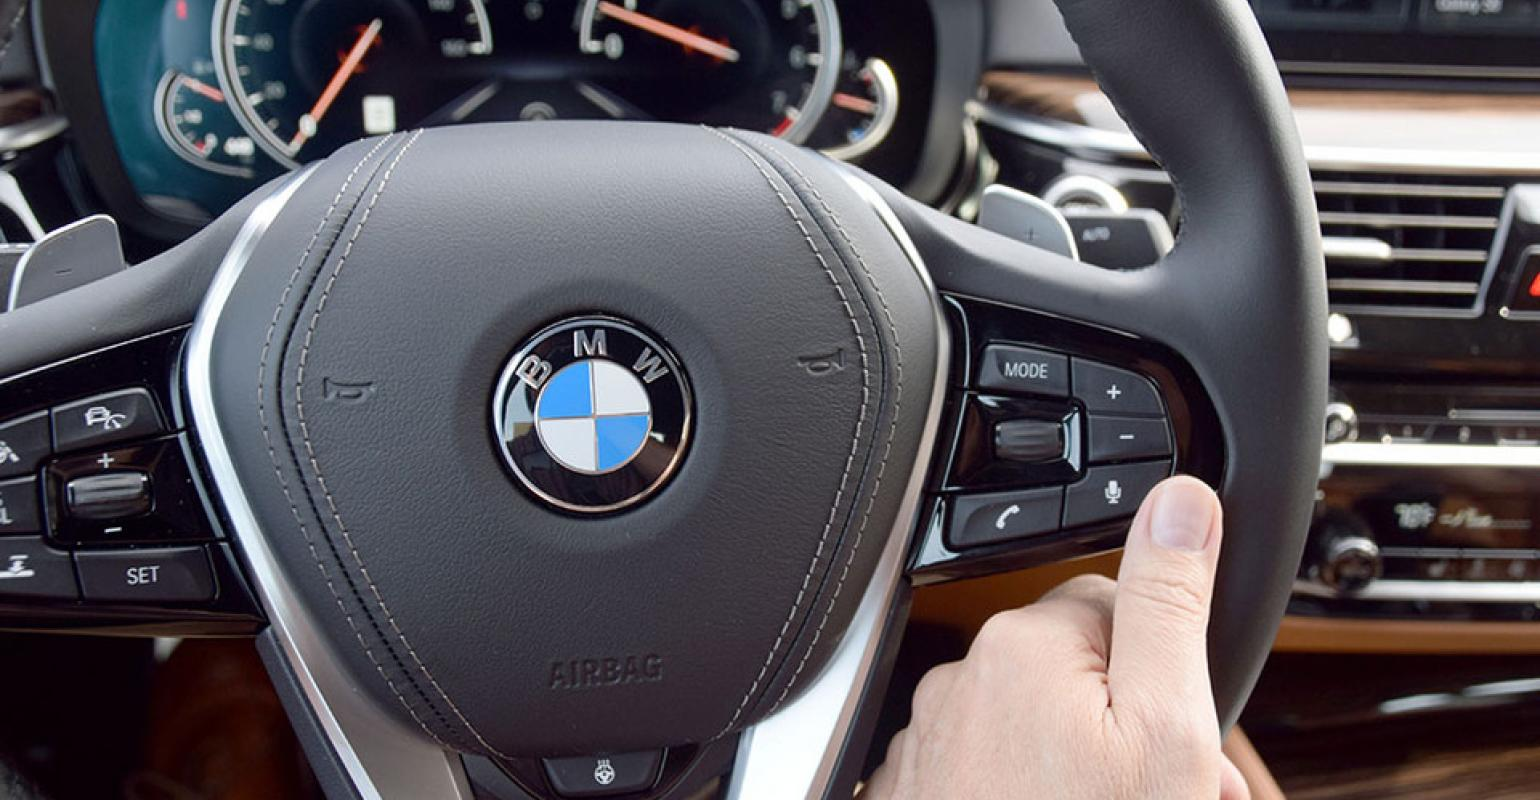 2018 Wards 10 Best Ux Winner 2018 Bmw 640i Makes For Ux Three Peat